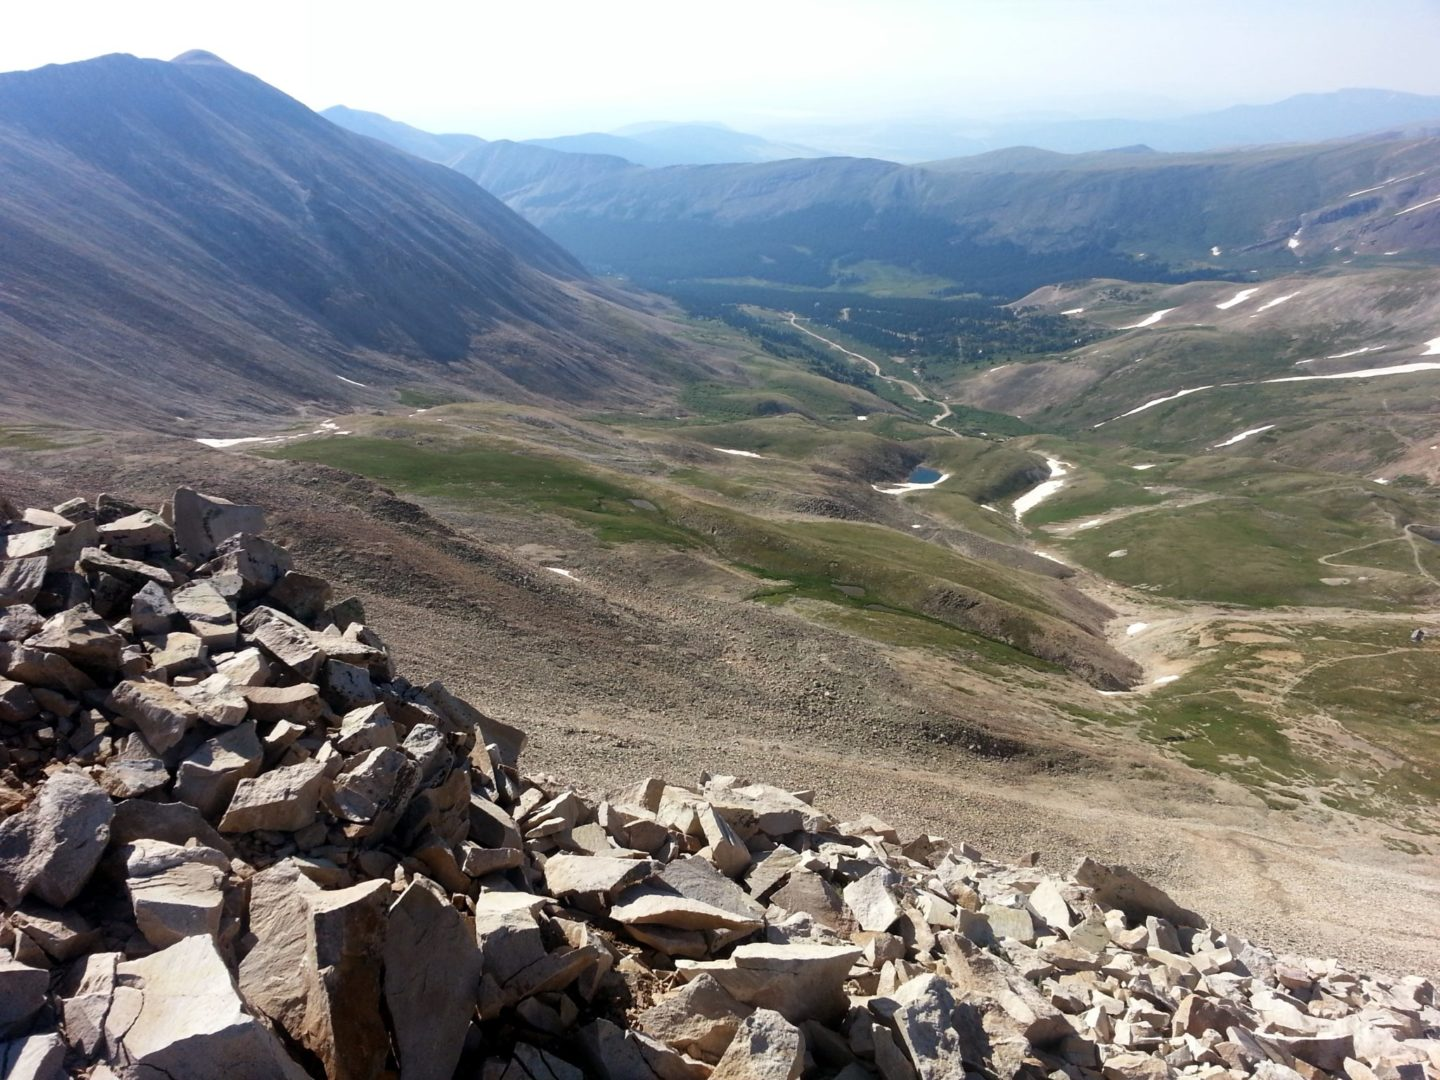 View into the valley with White Ridge (13,684') on the left